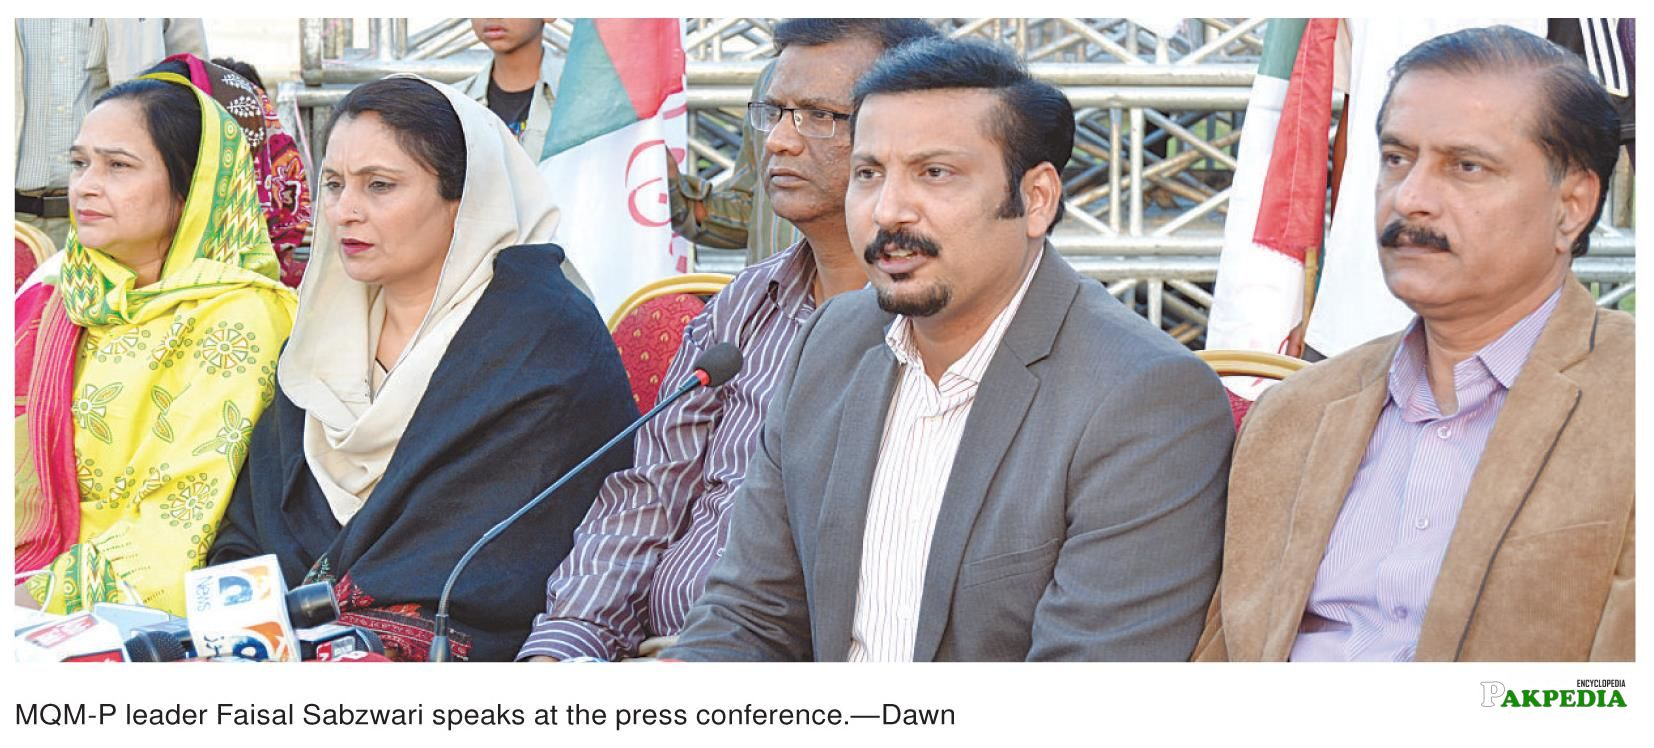 While speaking at press Conference with other members